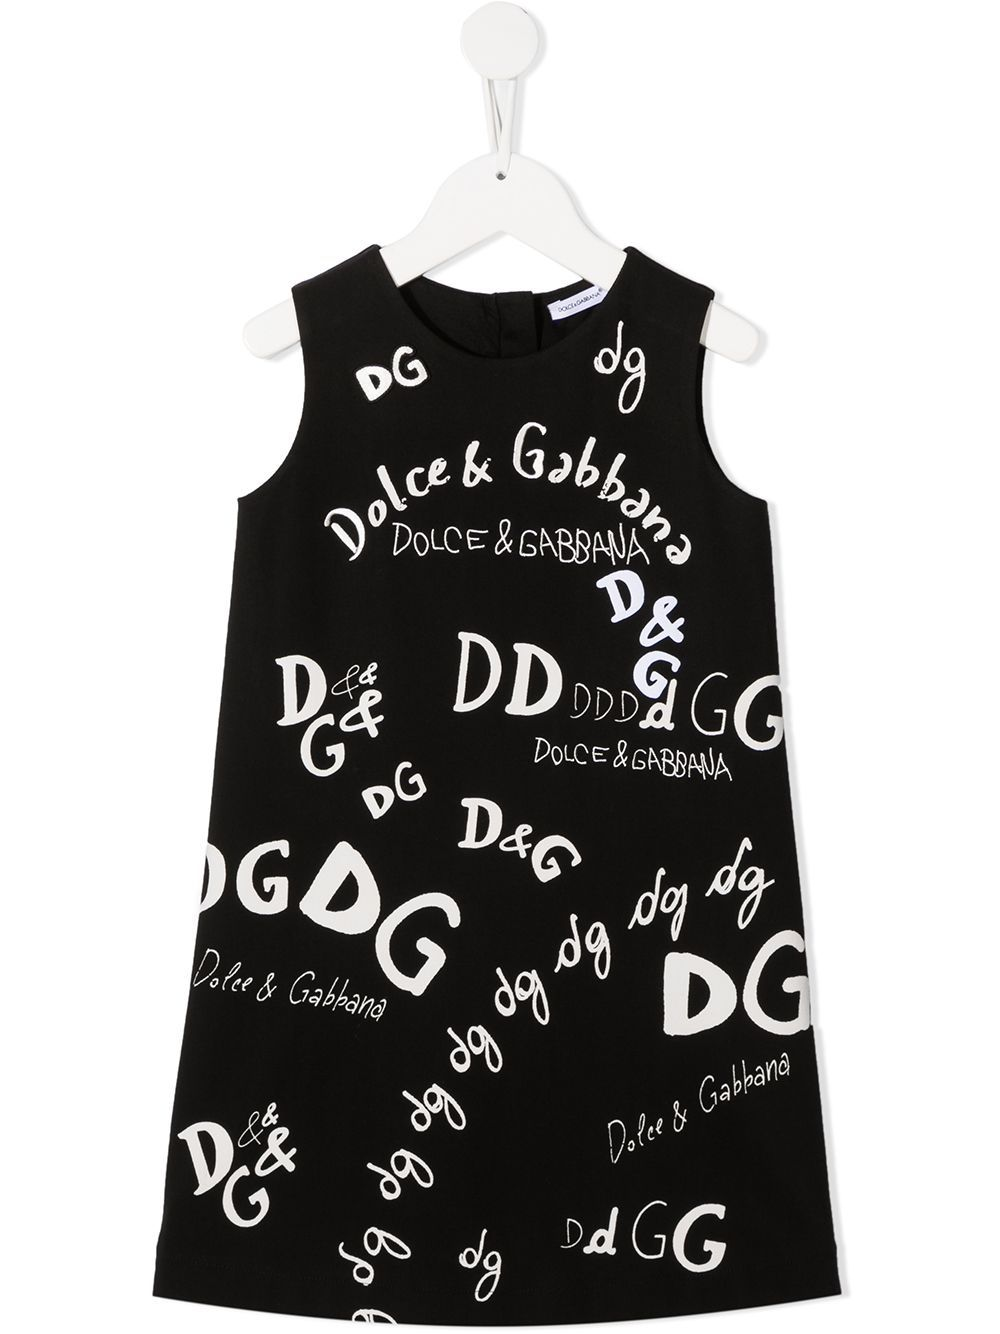 DOLCE & GABBANA KIDS All Over Logo Dress Black - Maison De Fashion